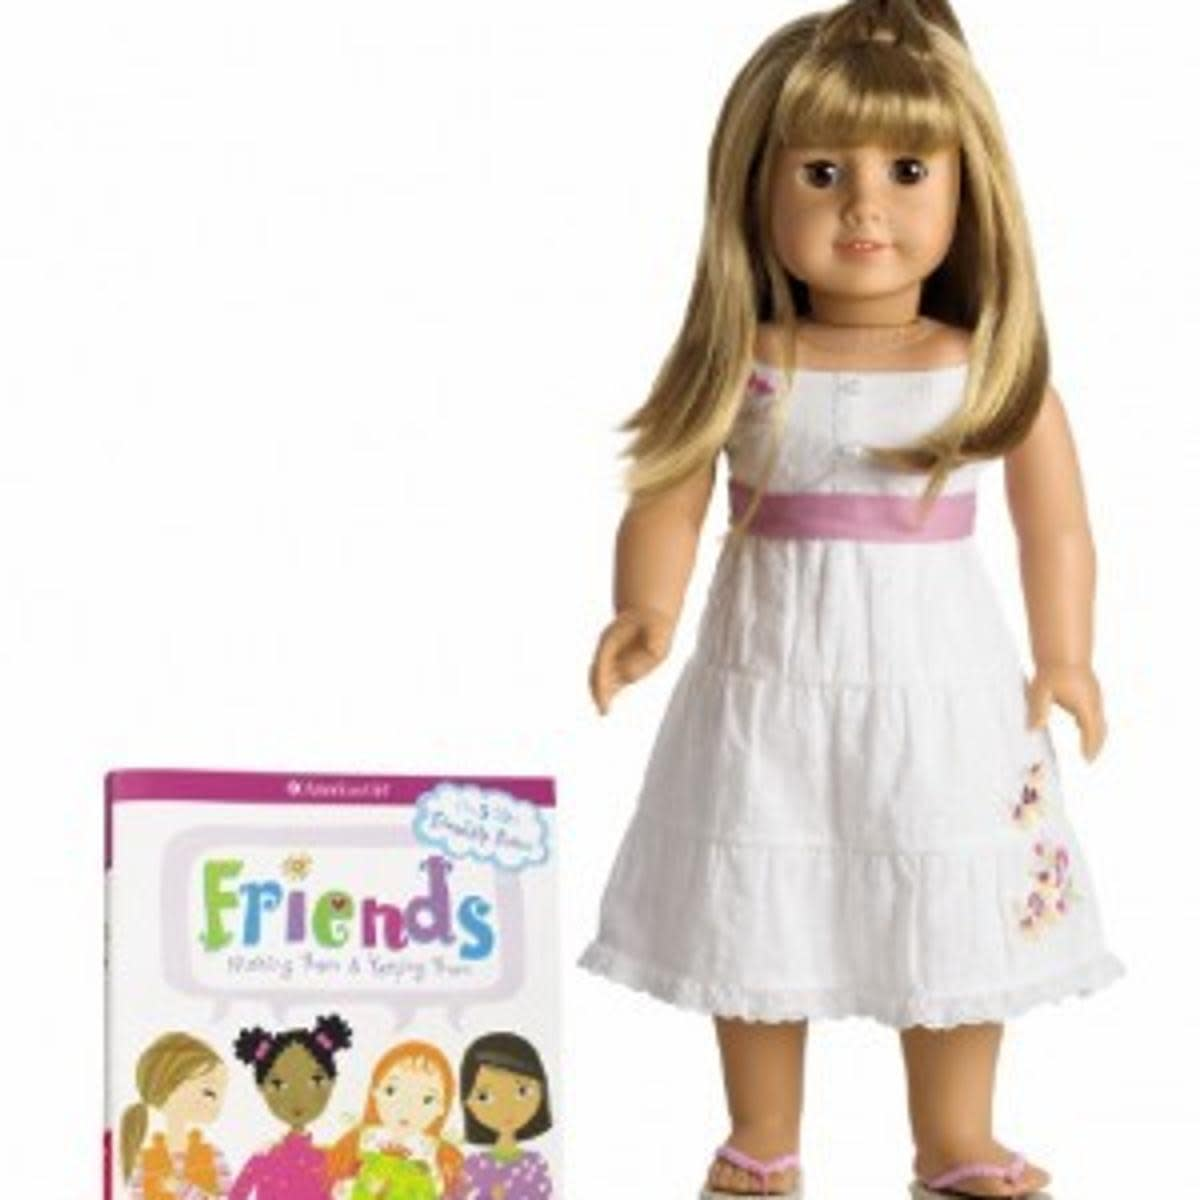 Gwen, one of the companion dolls to Chrissa, the 2009 Girl of the Year